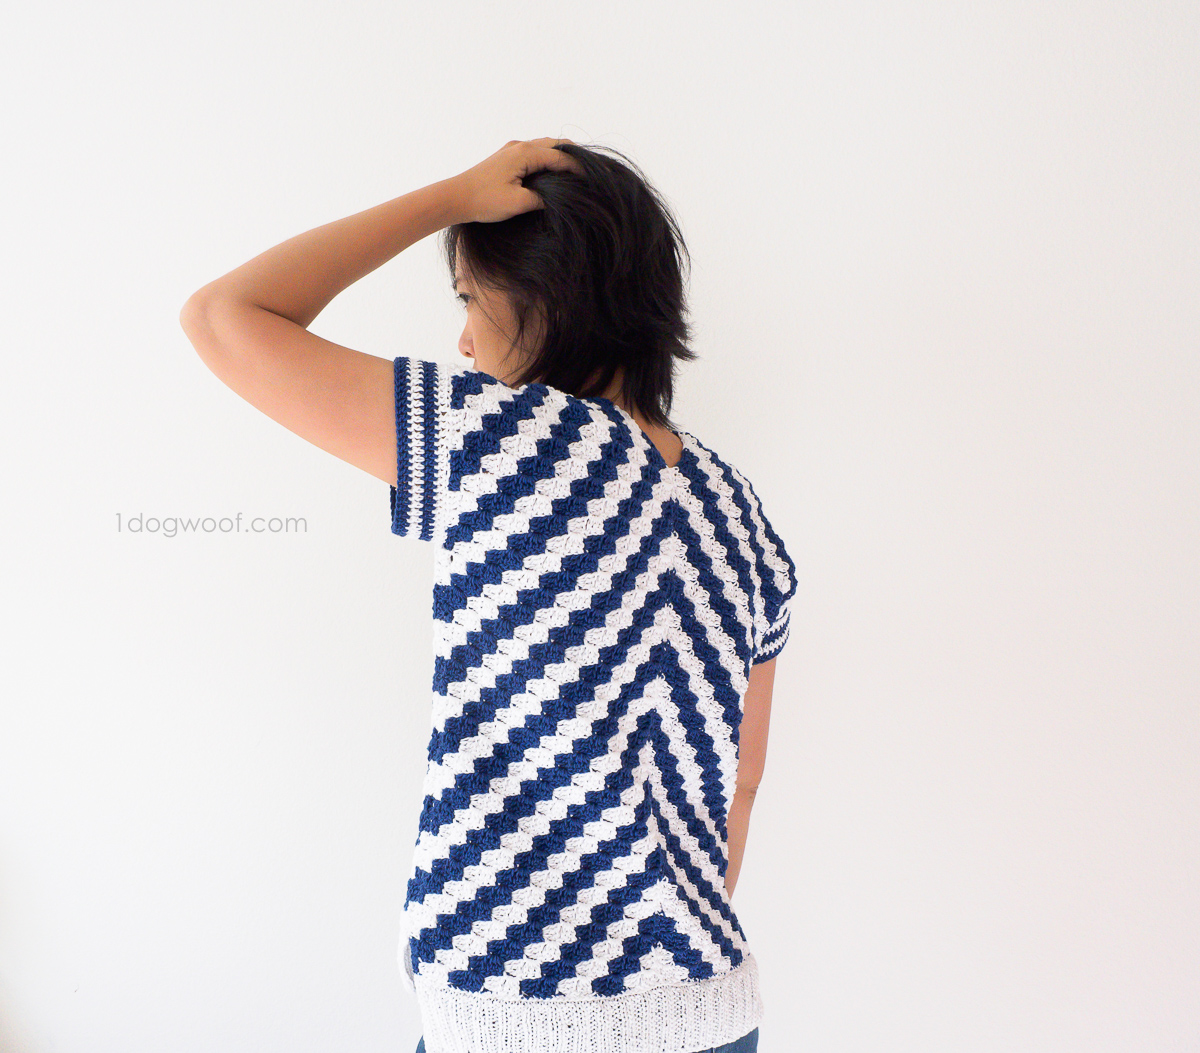 stunning stripes in a c2c crochet top